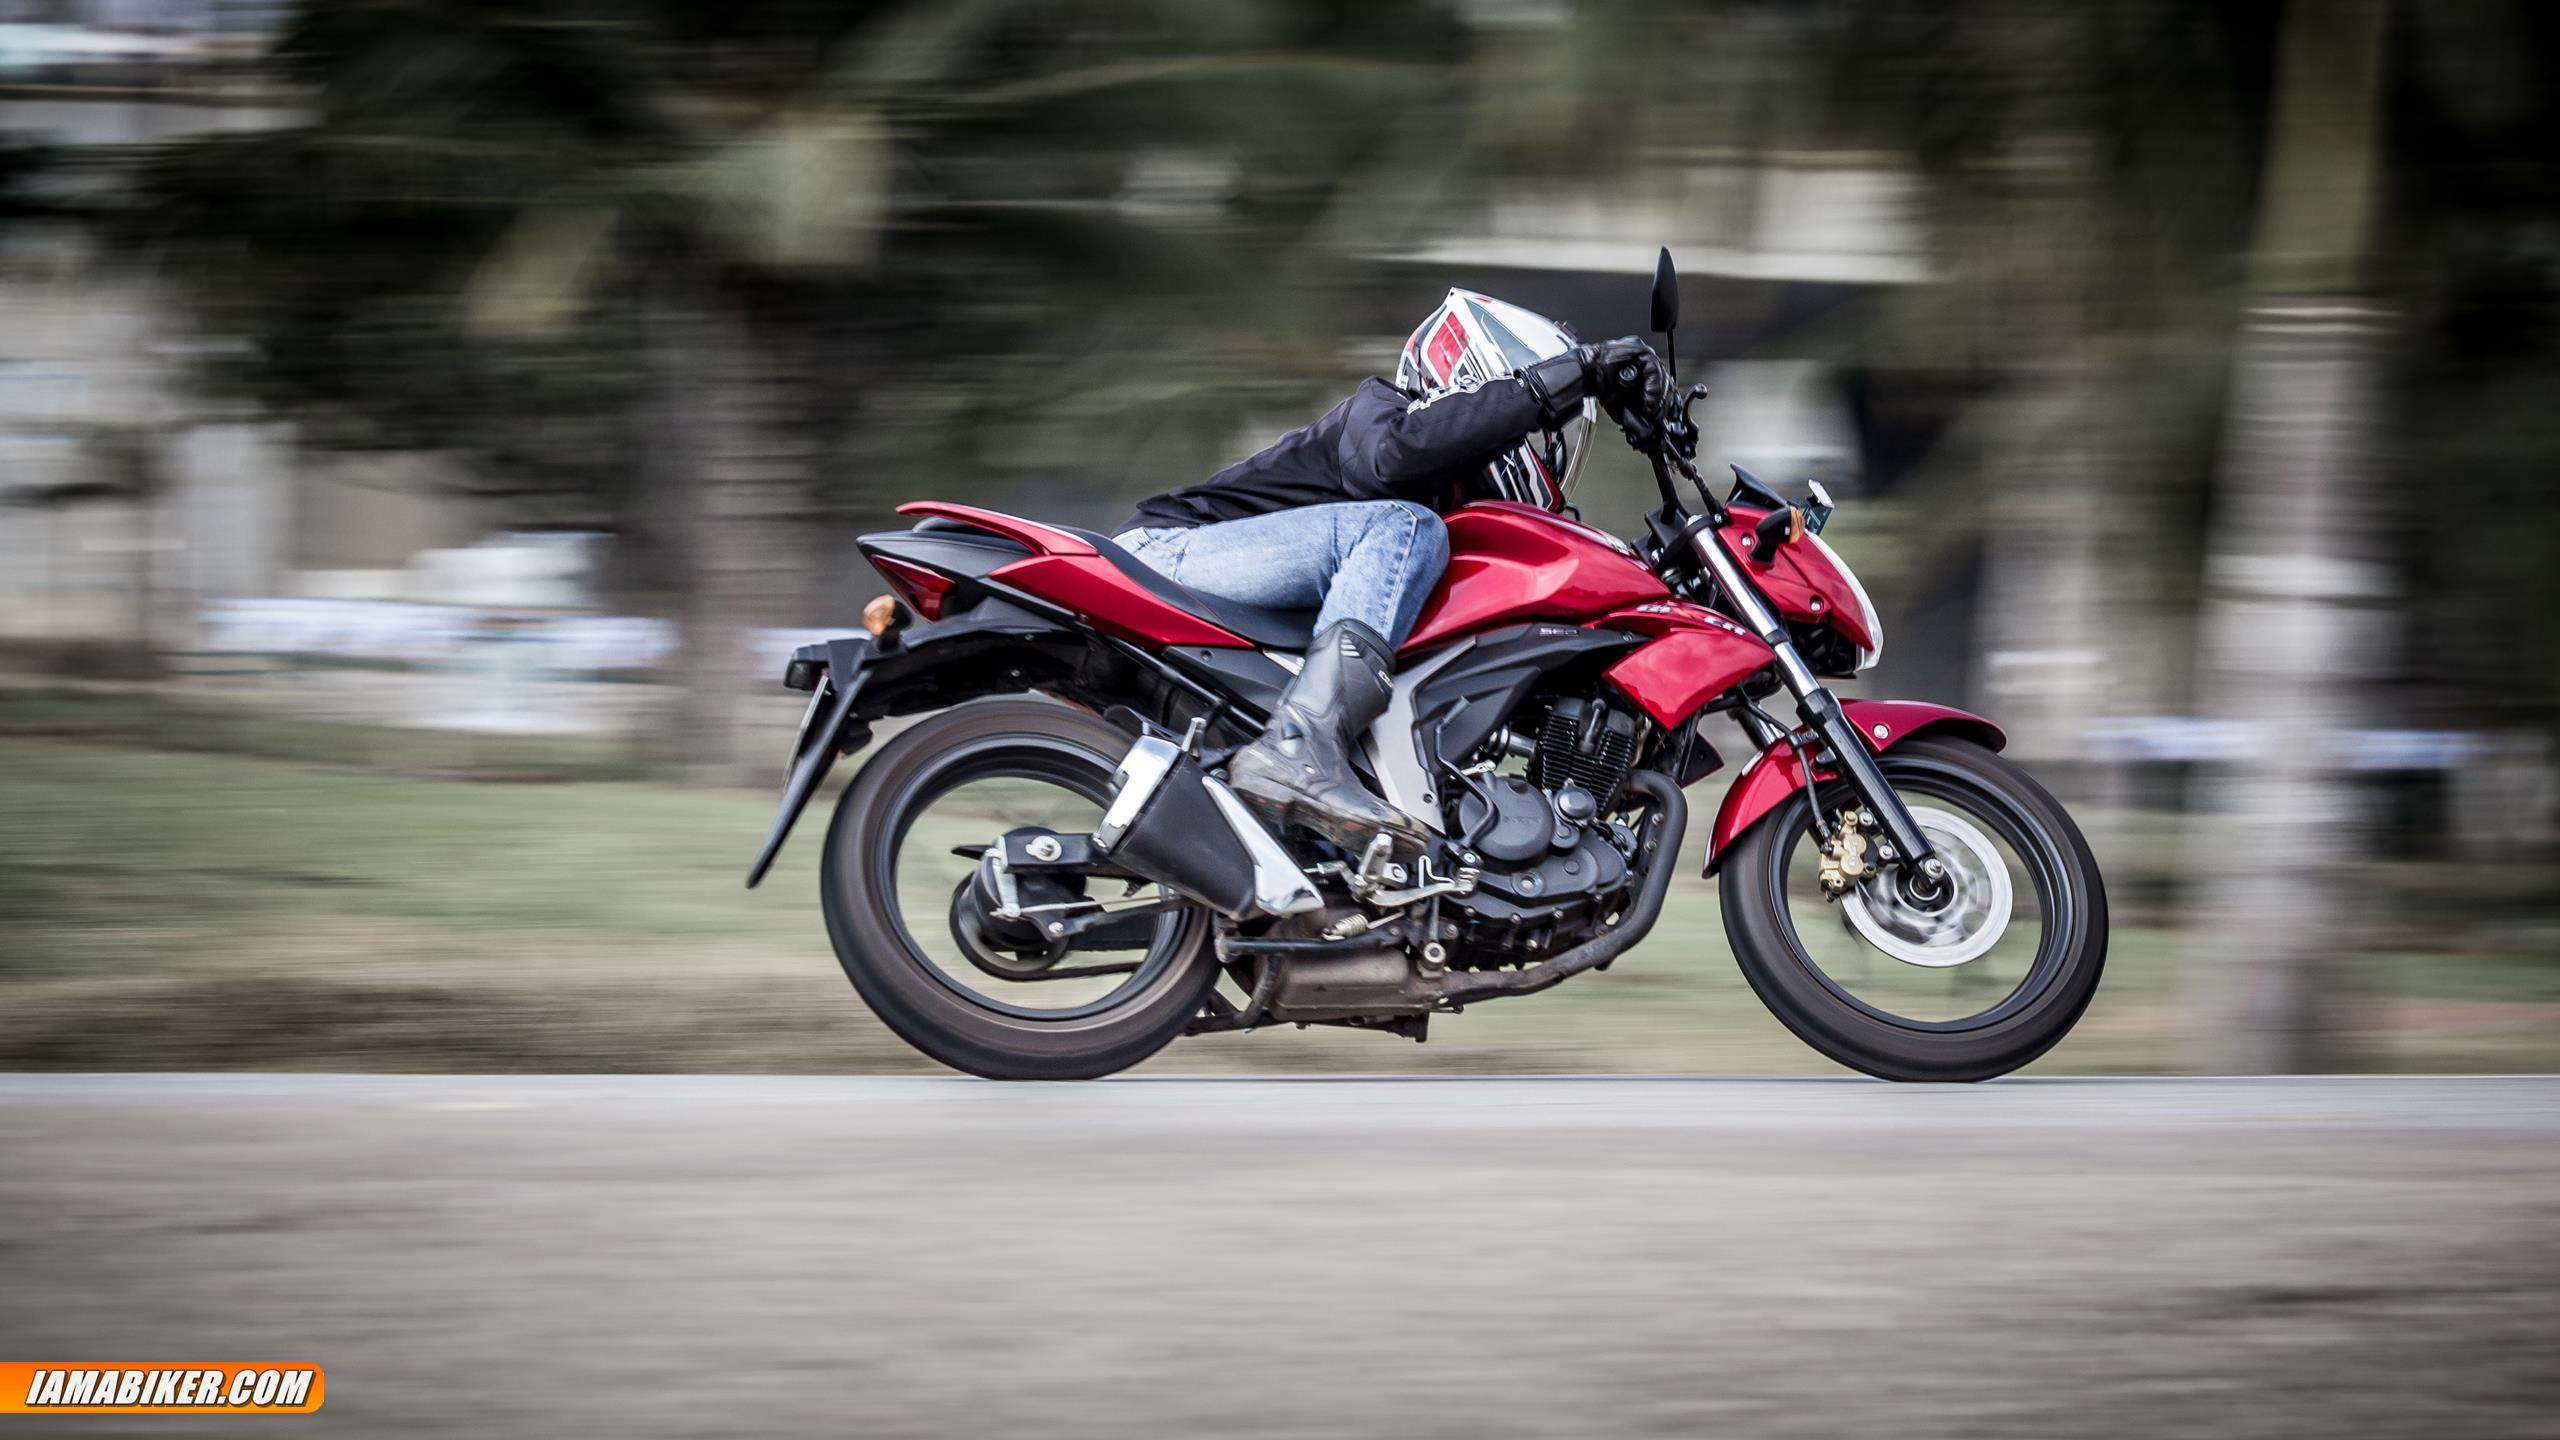 Suzuki Gixxer 155 Review Top Speed Mileage Colours Price Sf Black Modified The Is So Unbelievably Light To Handle Changing Directions And Zipping Through Traffic Almost A Pleasurable Experience